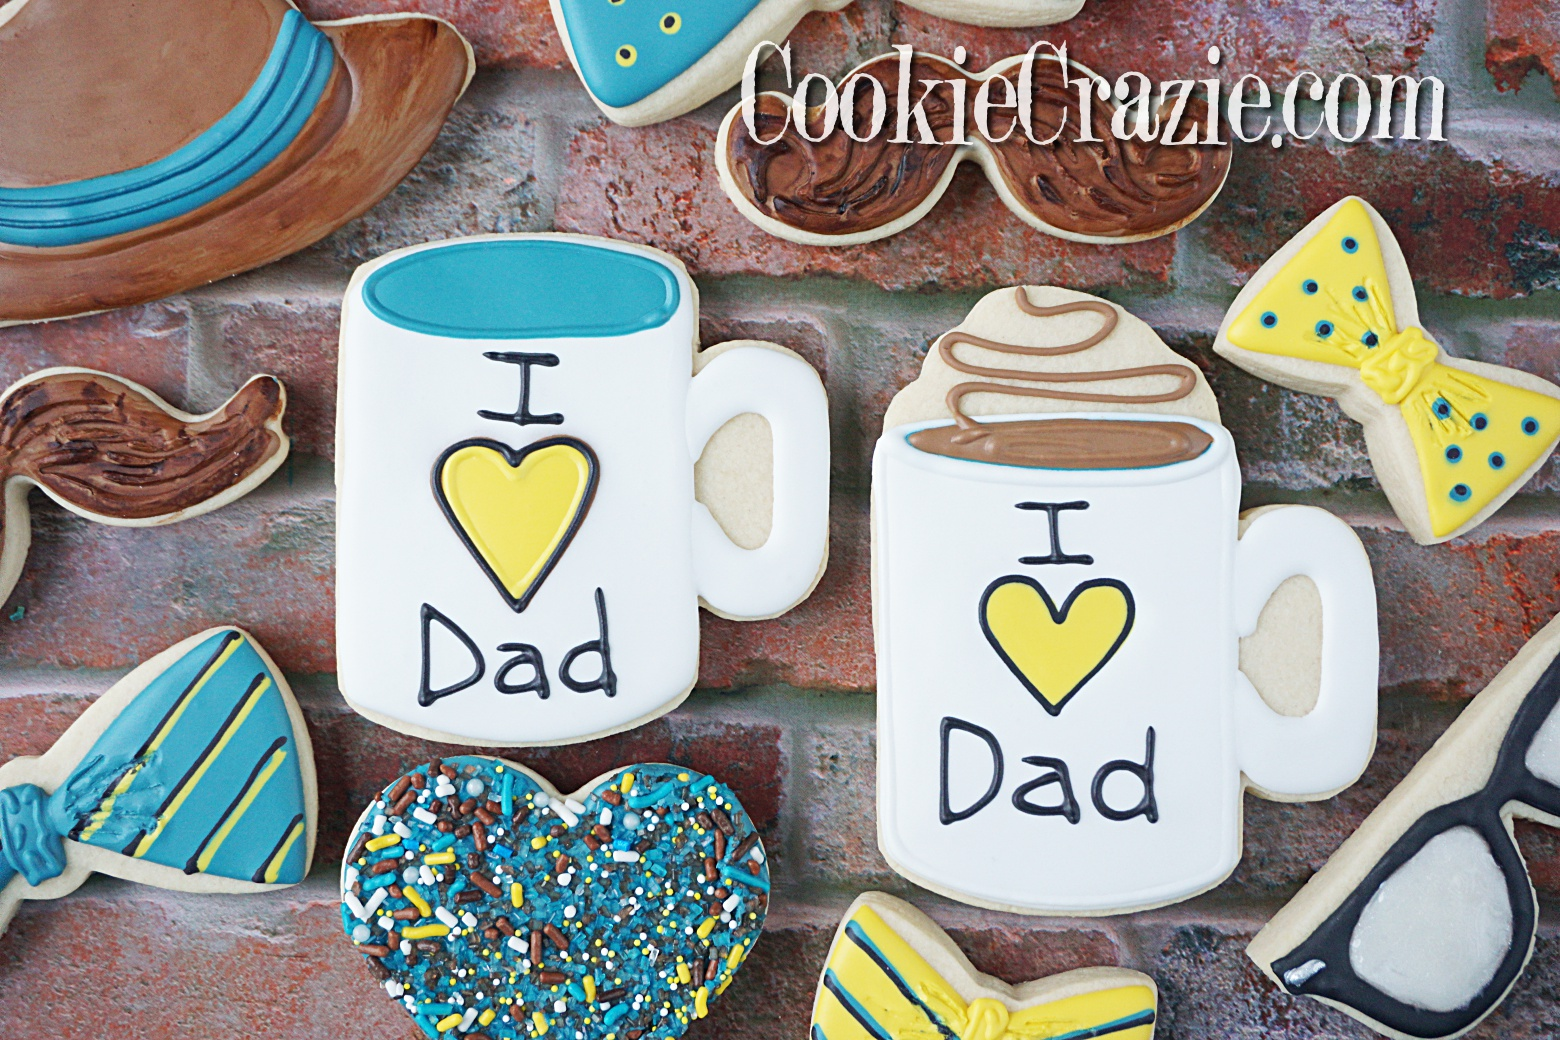 I ❤️ DAD Mug Decorated Sugar Cookies YouTube video  HERE